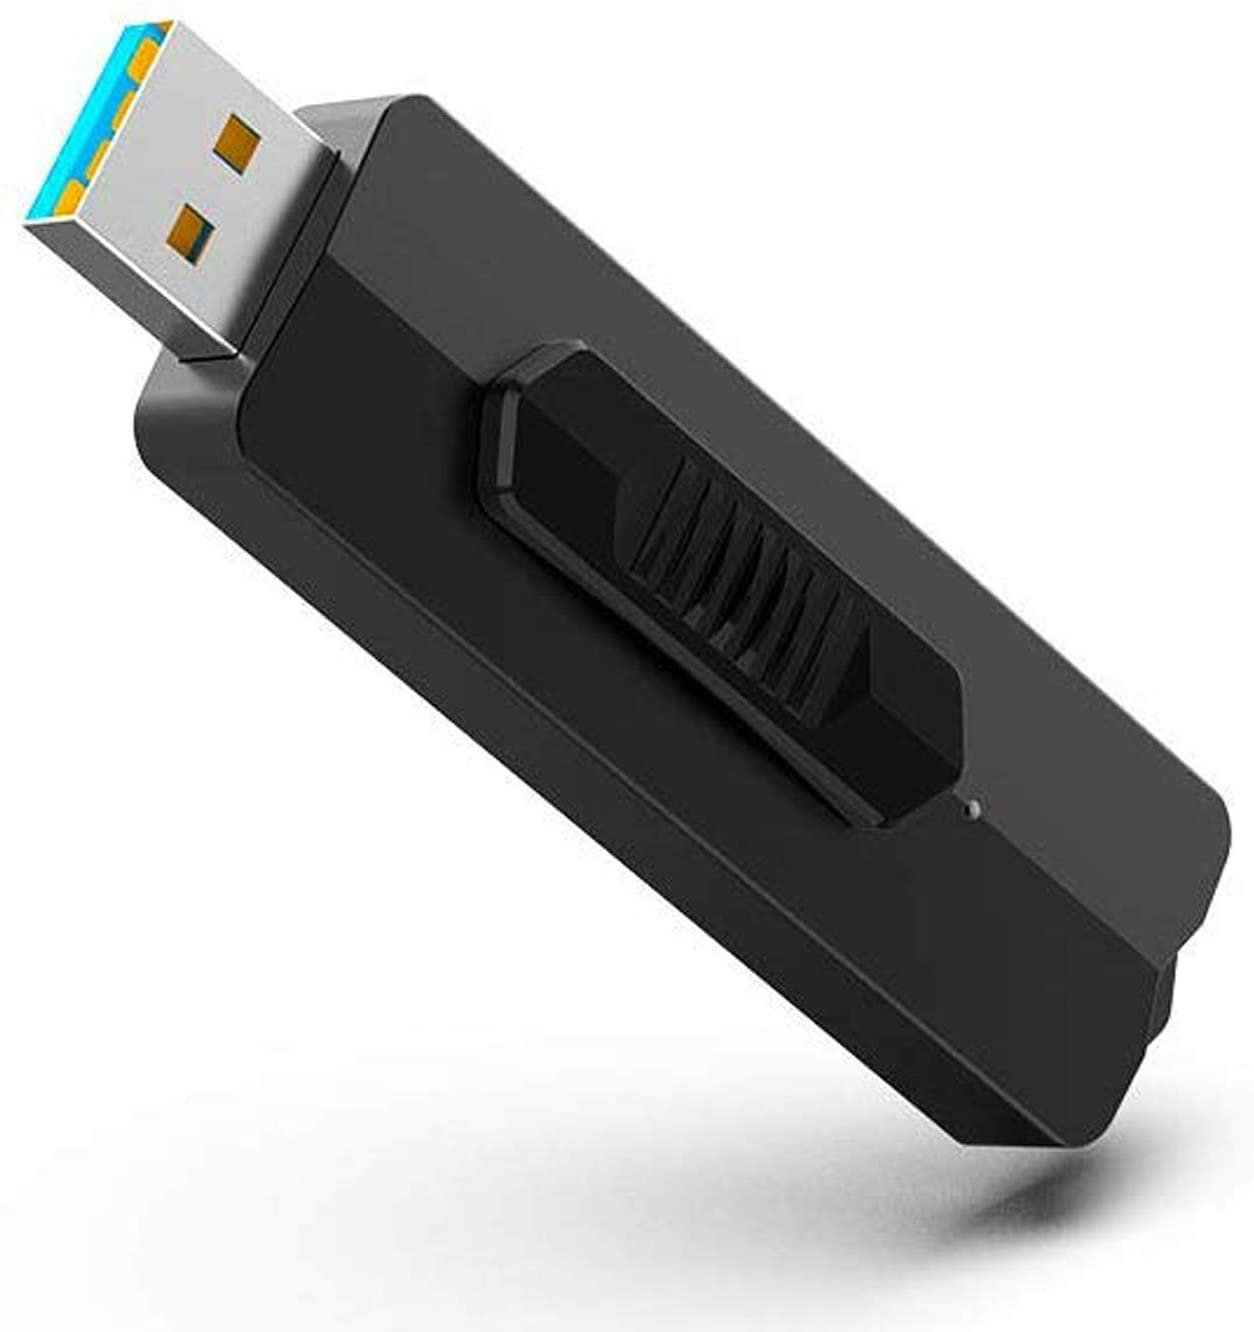 TOPESEL 128 GB Flash Drive 128gb USB 3.1 with Read Speeds up to 370MB/s, USB 3.1 Gen 1 - Black Gray